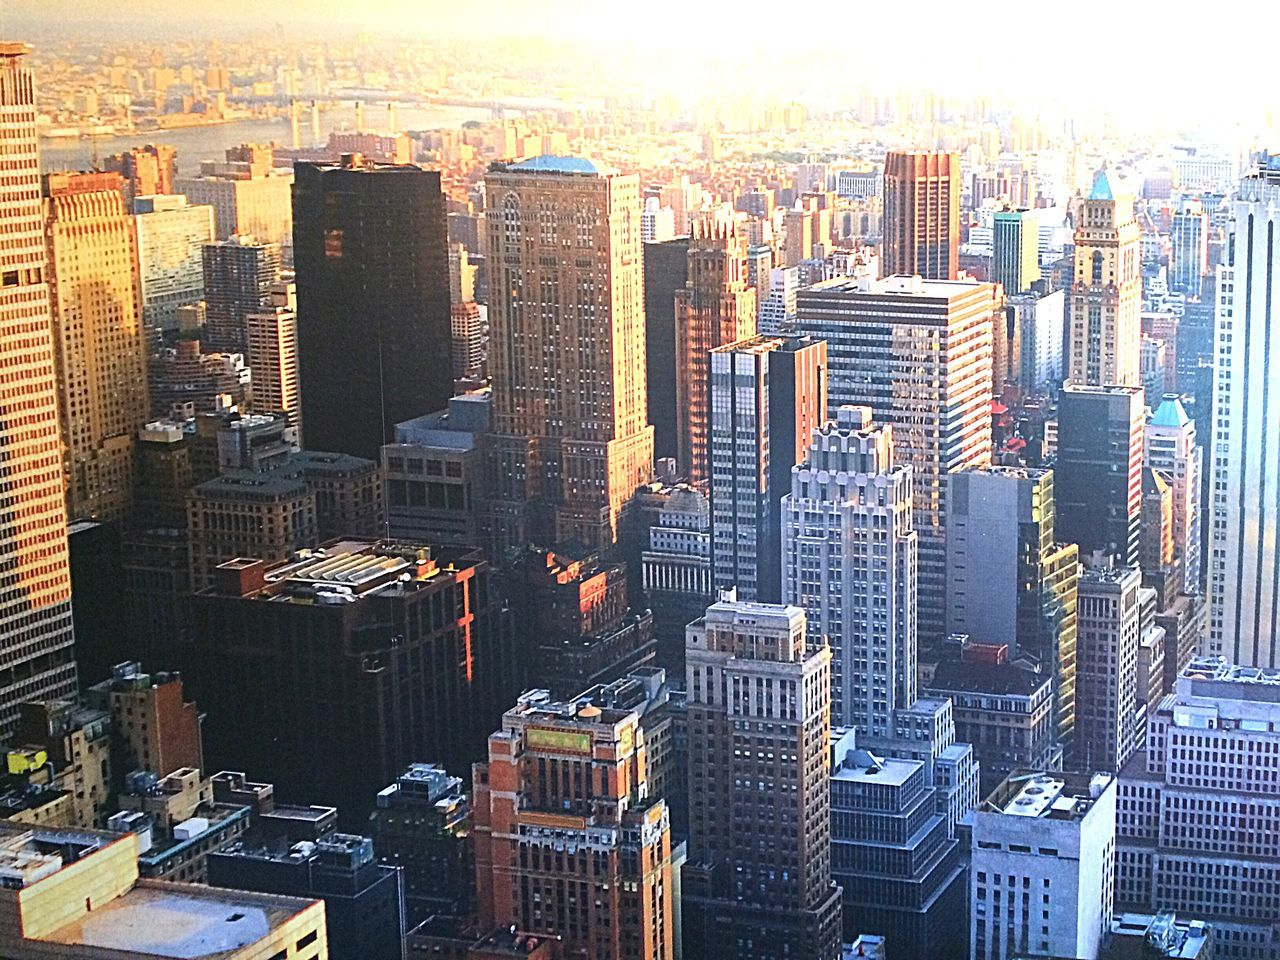 skyscraper, cityscape, architecture, building exterior, city, crowded, development, built structure, modern, urban skyline, travel destinations, high angle view, downtown district, outdoors, sunset, growth, day, illuminated, sky